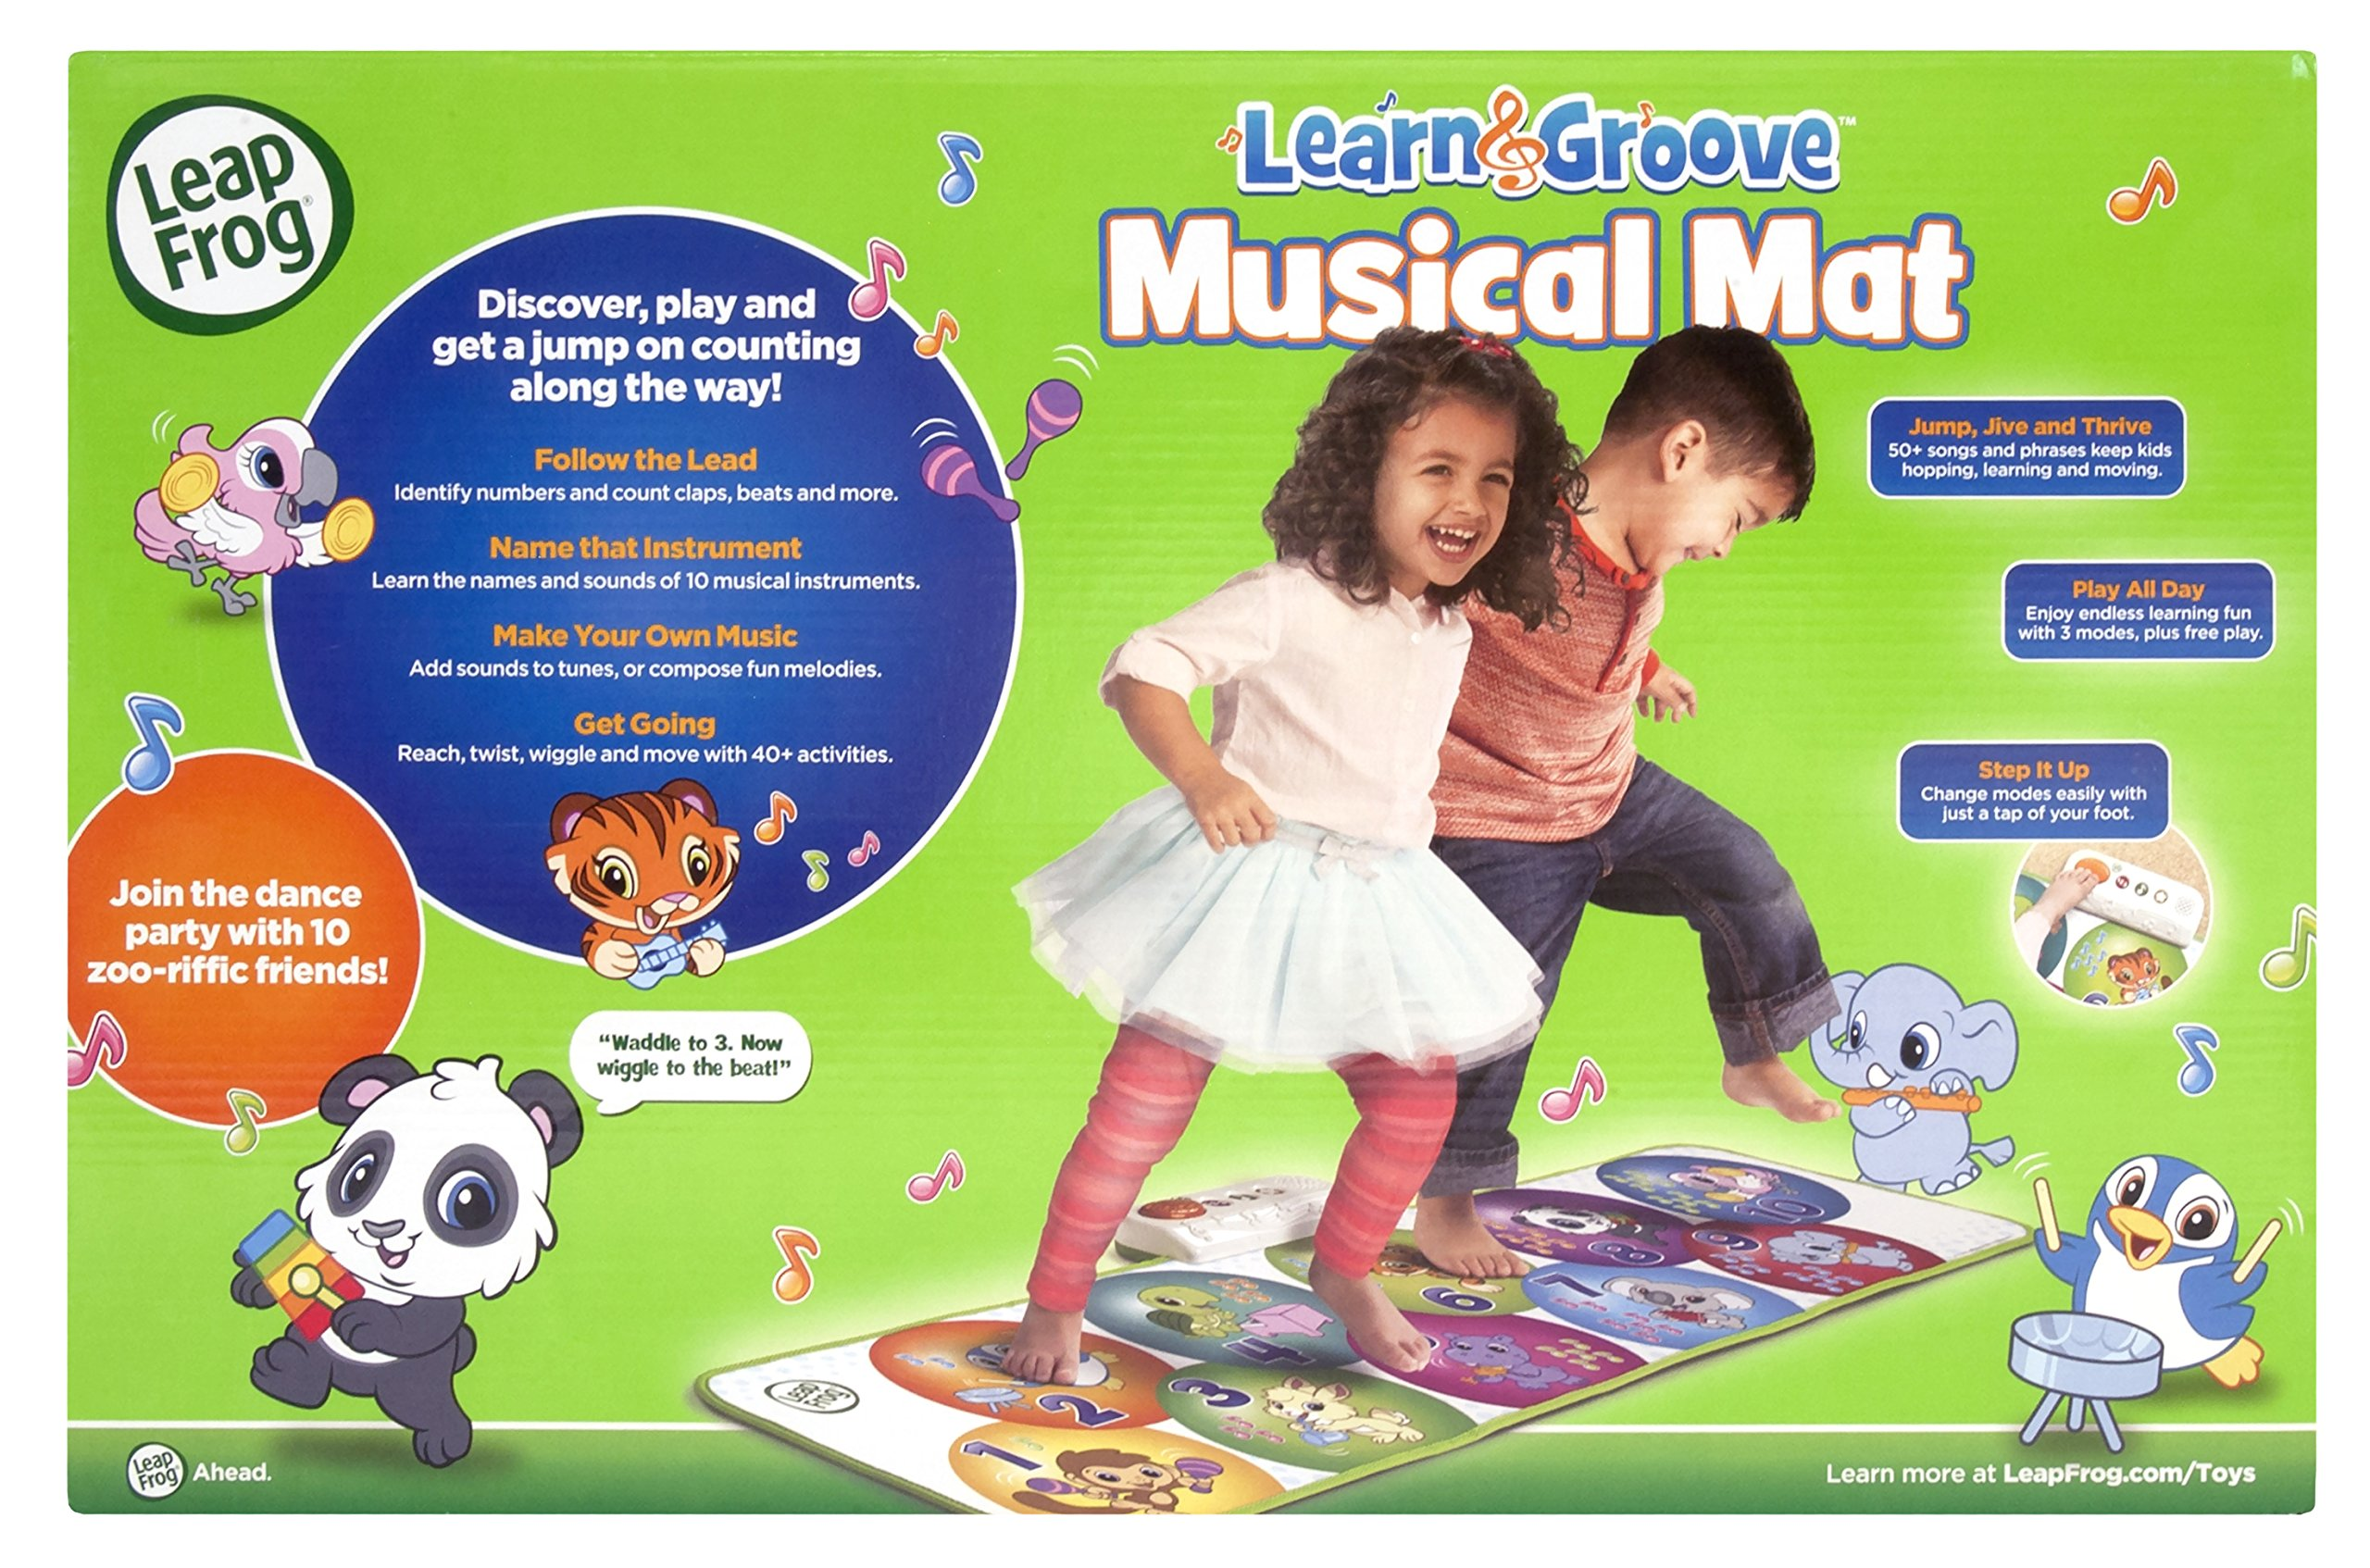 LeapFrog Learn and Groove Musical Mat, Green by LeapFrog (Image #6)